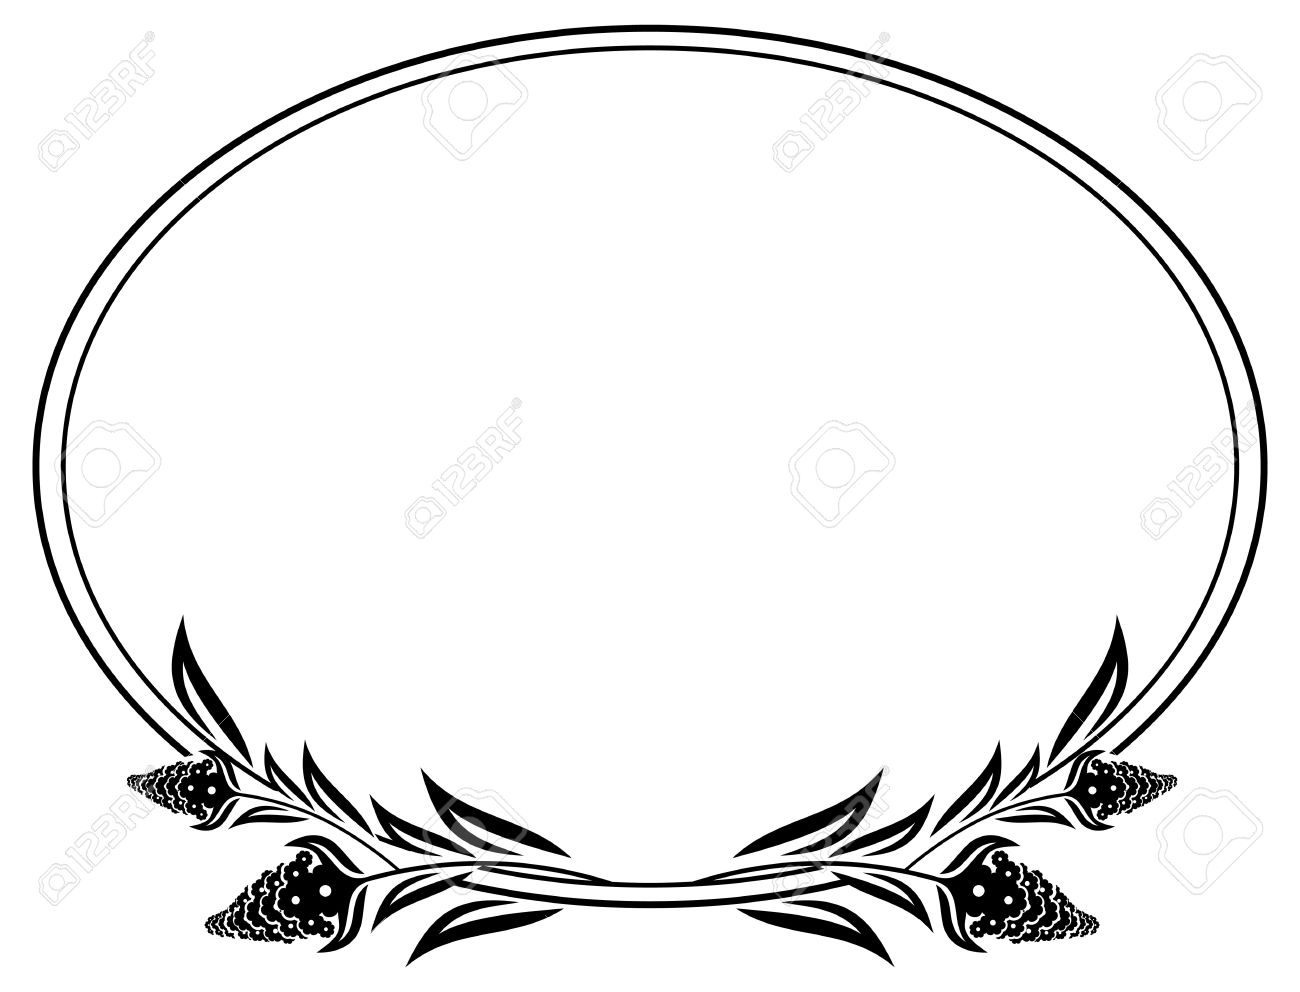 black and white oval frame with decorative flowers silhouettes rh 123rf com decorative border clip art black and white